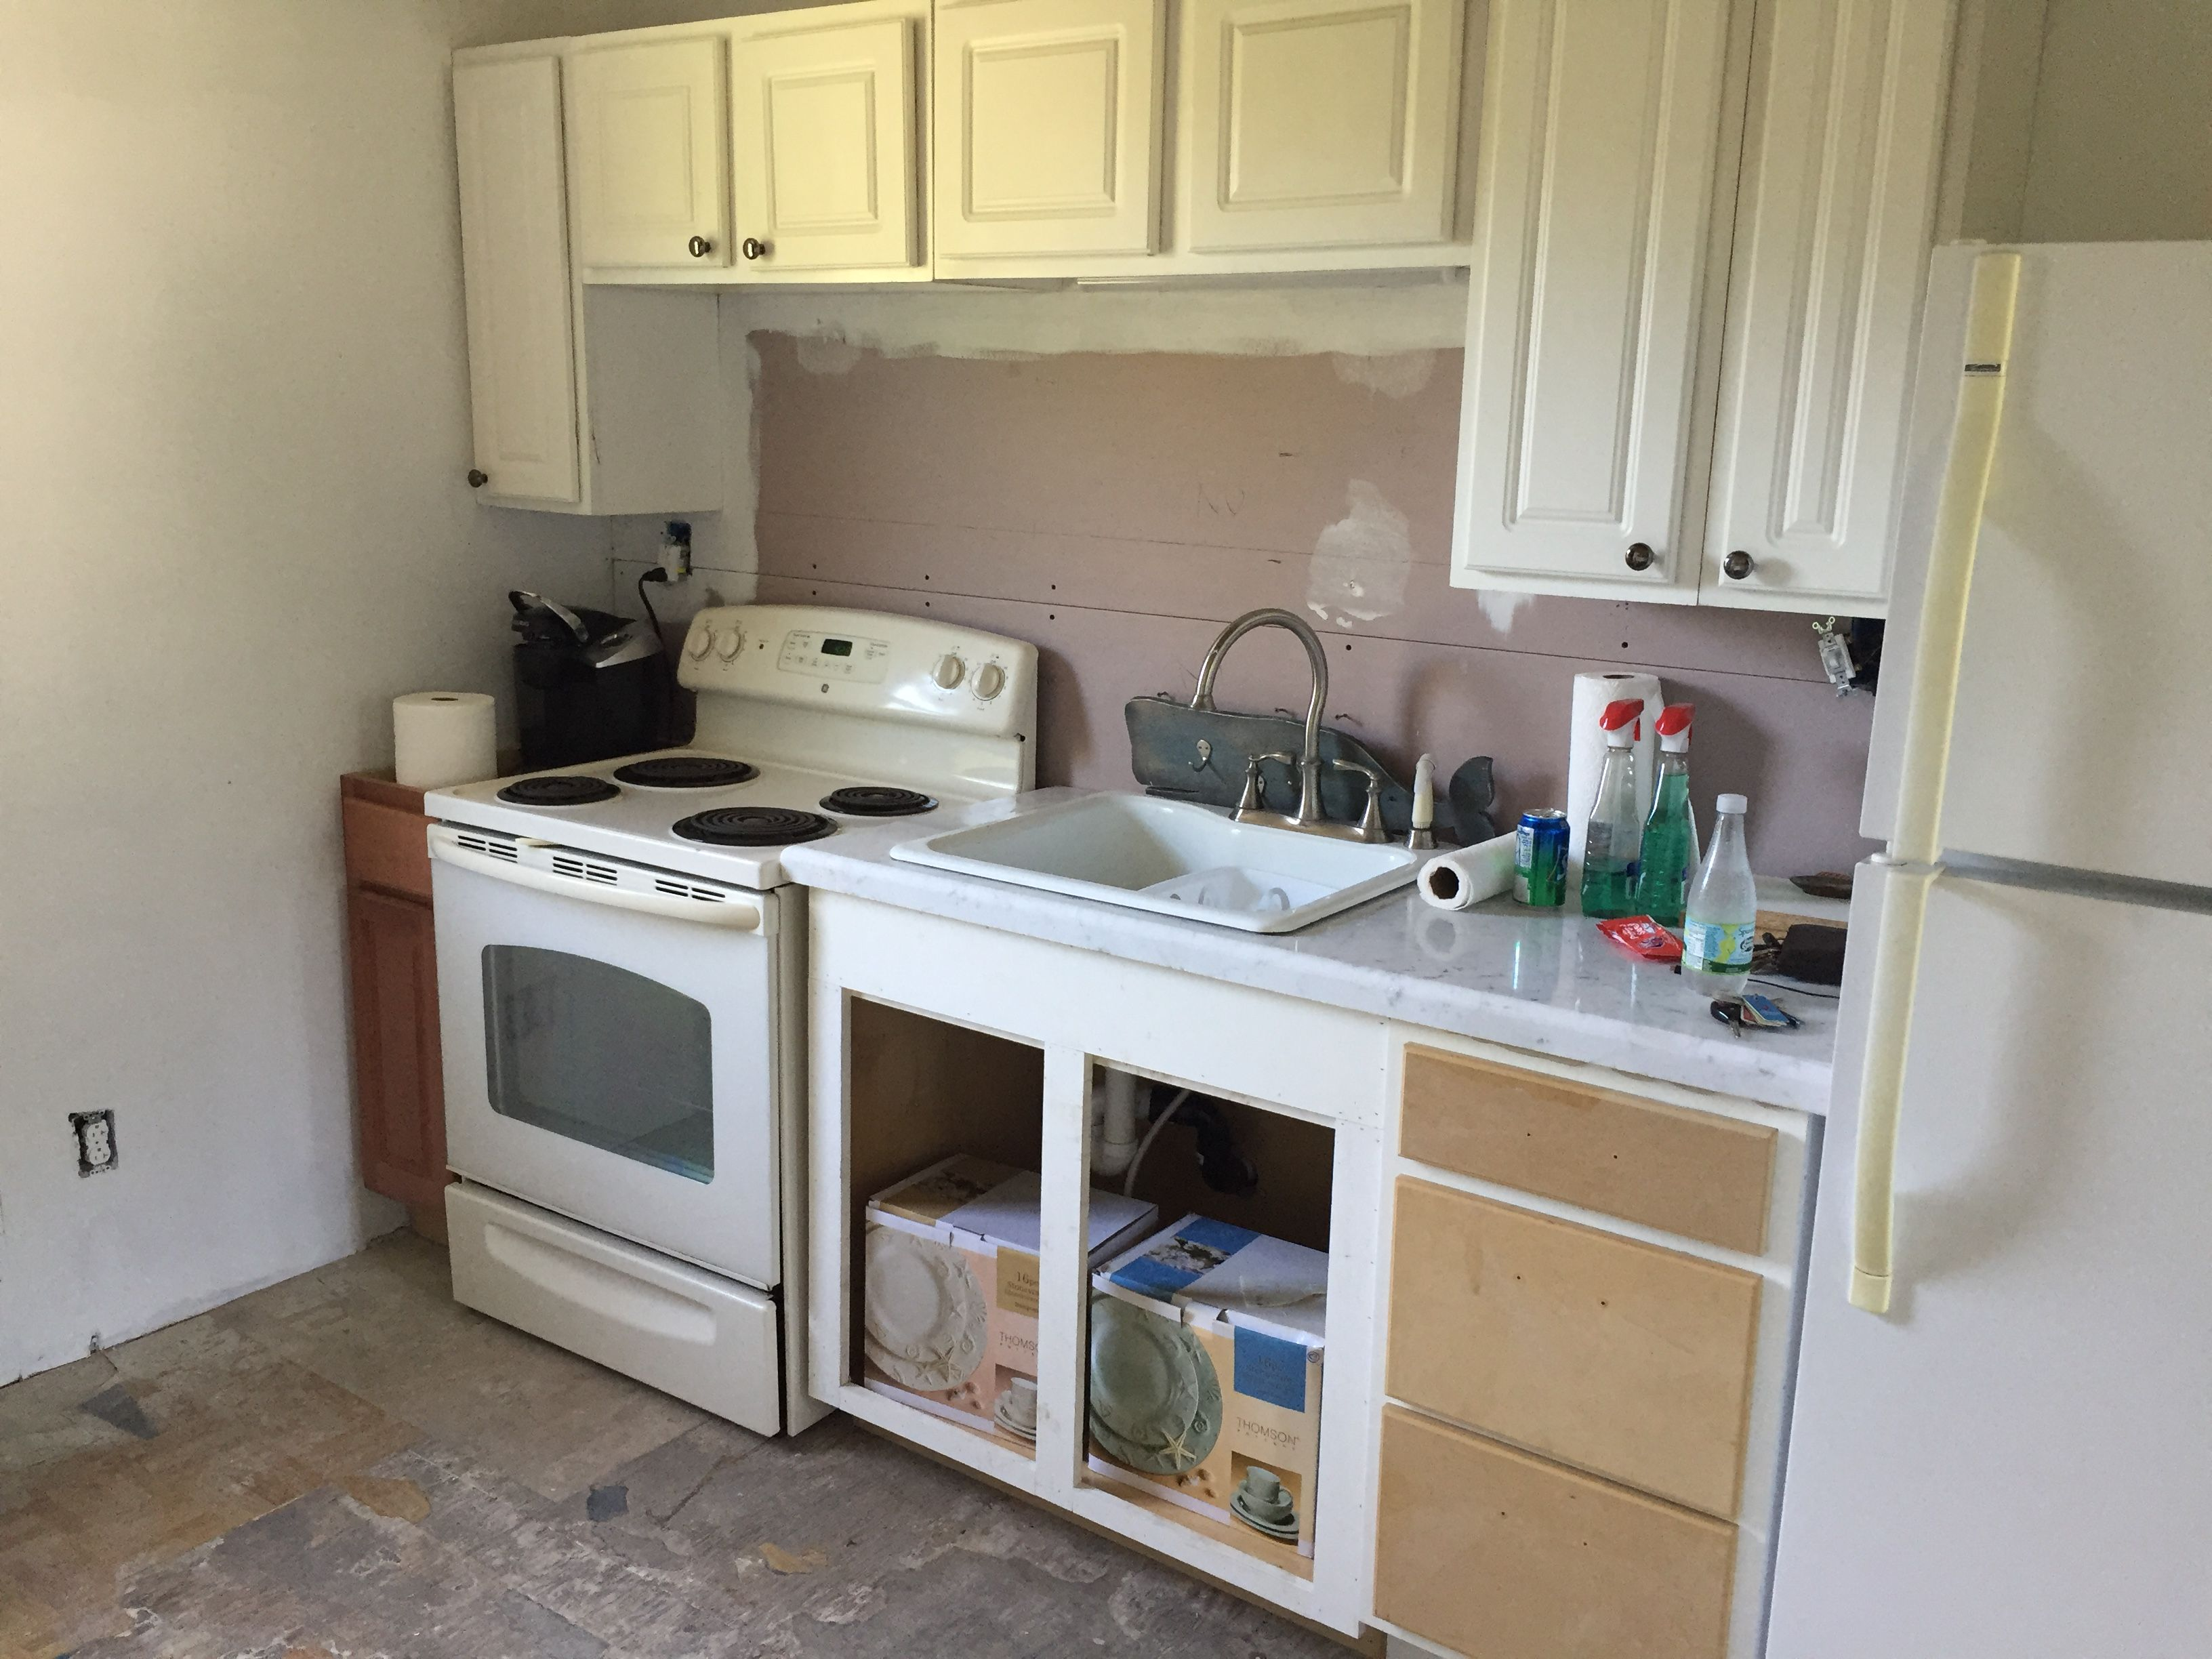 Kitchen Cabinets Craigslist Stove Habitat And Marble Countertop Free On The